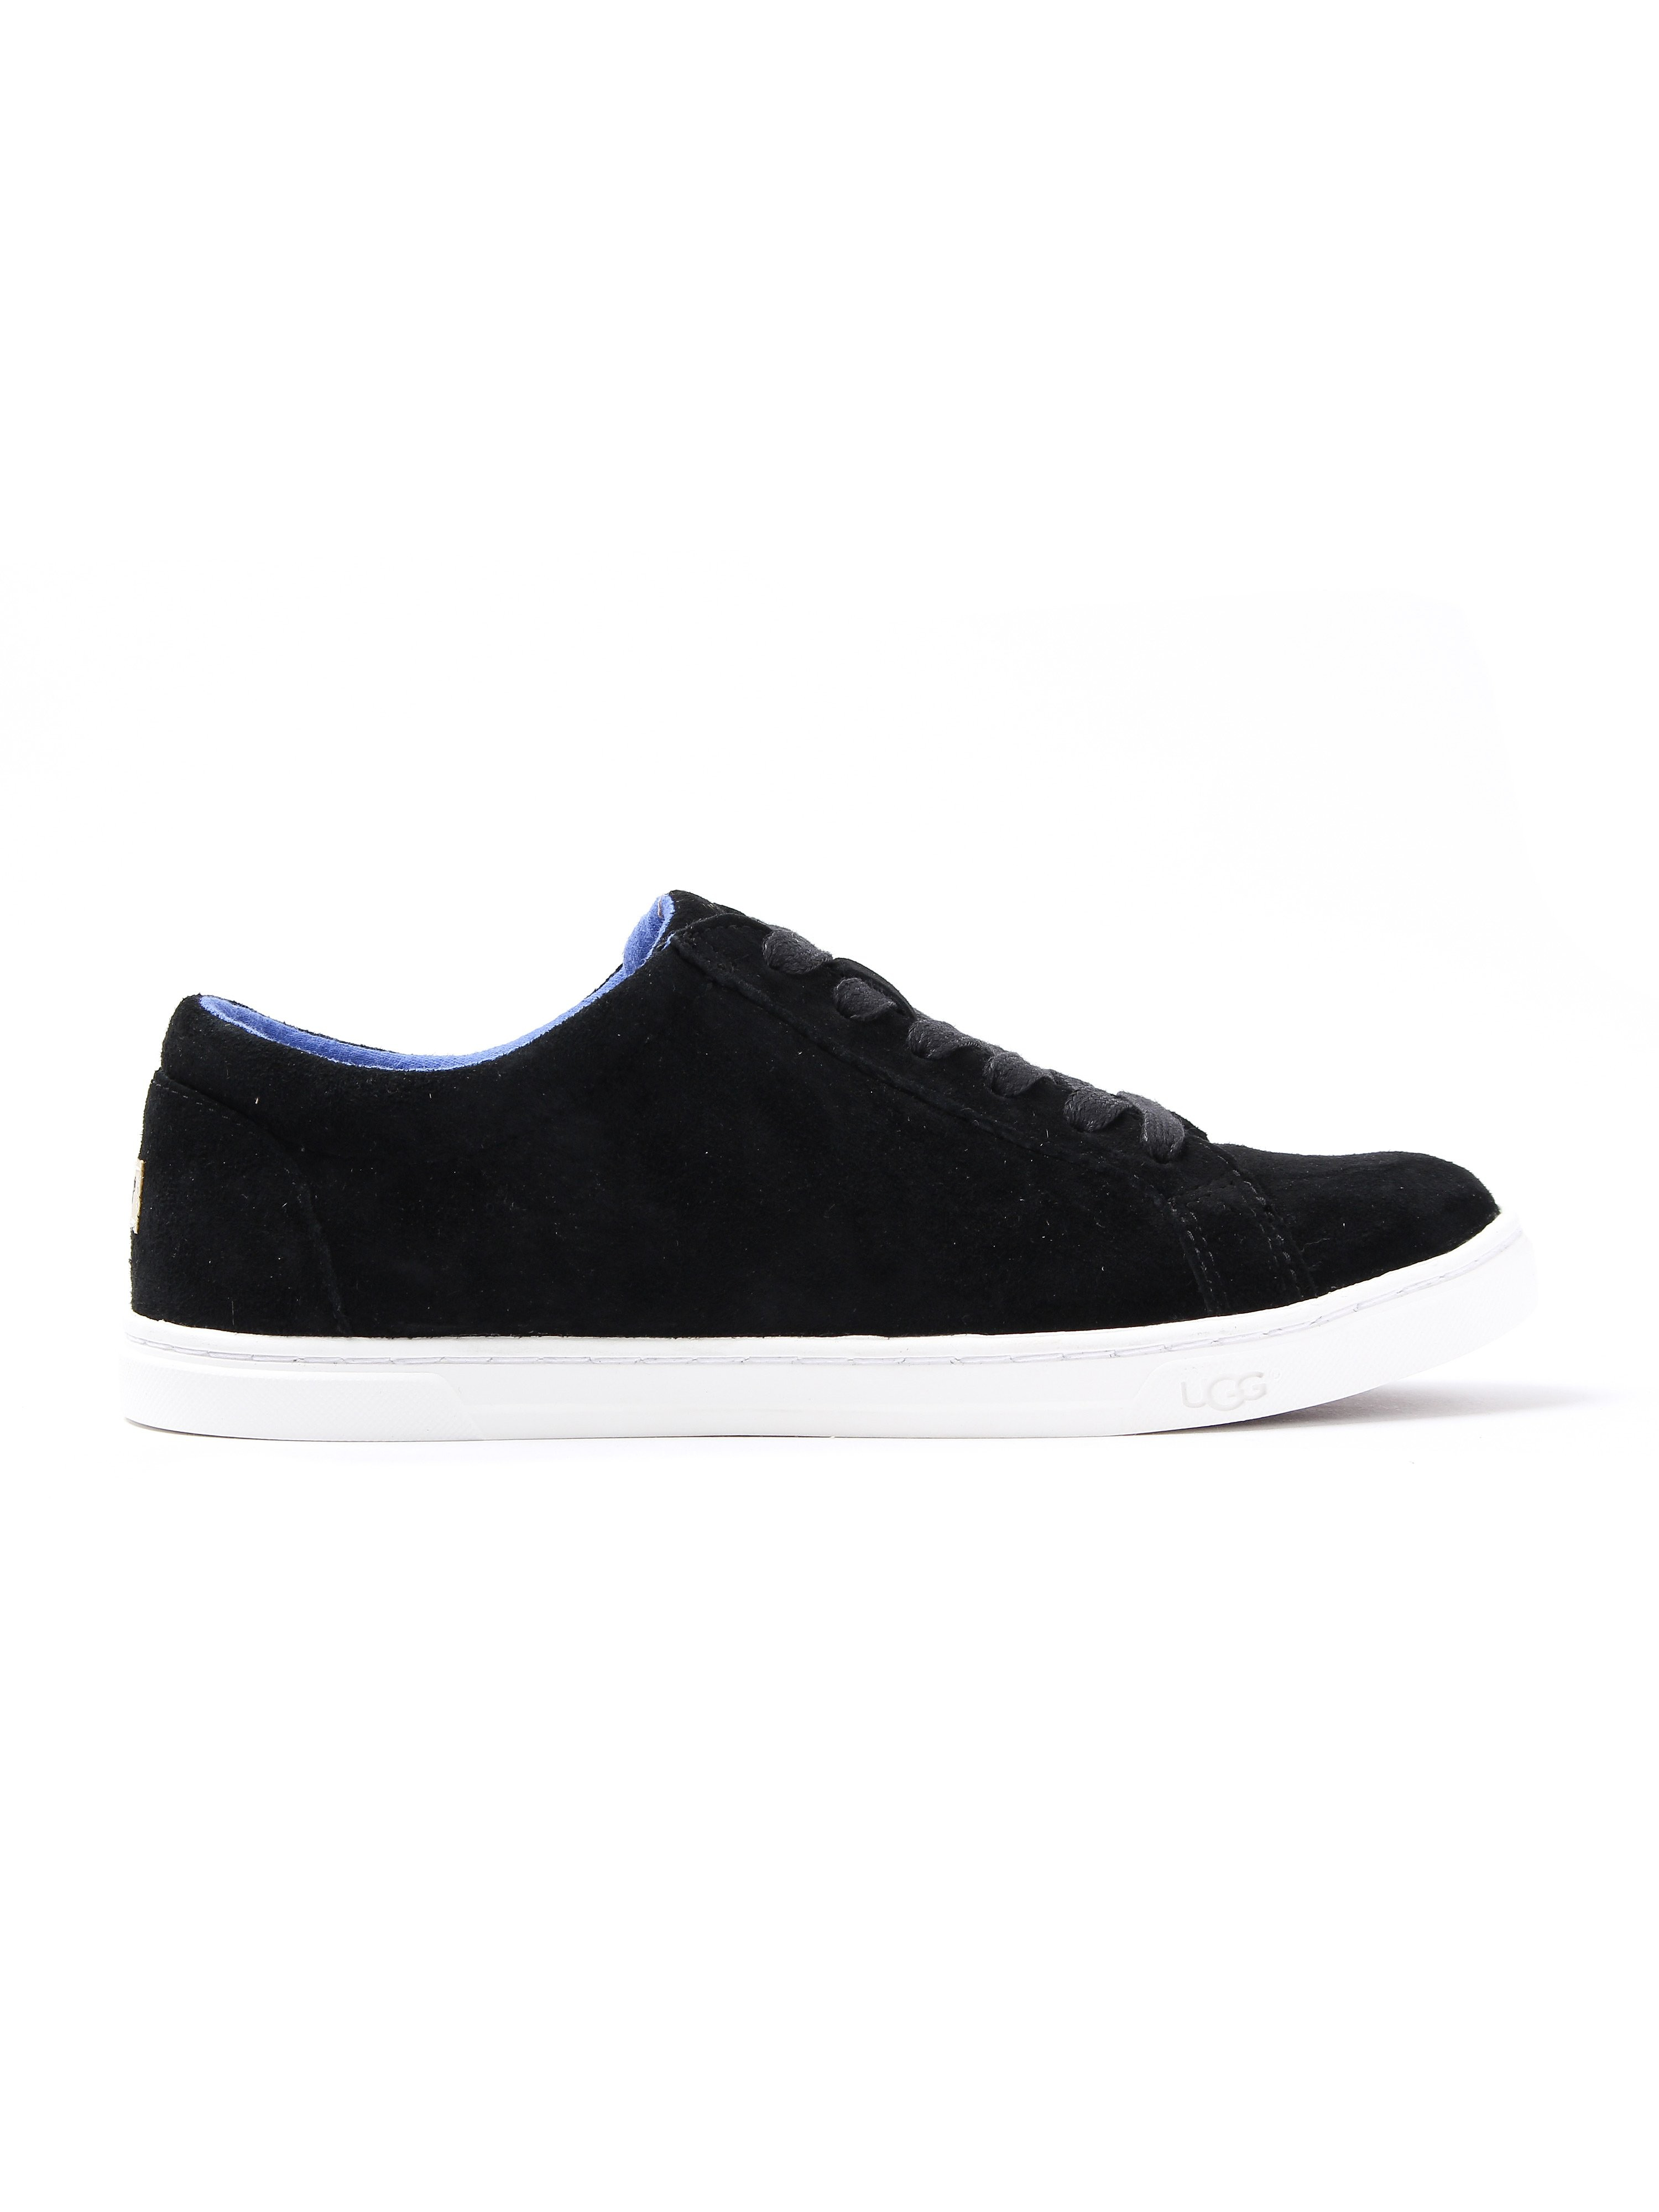 Ugg Women's Karine Suede Low-Rise Trainers - Black